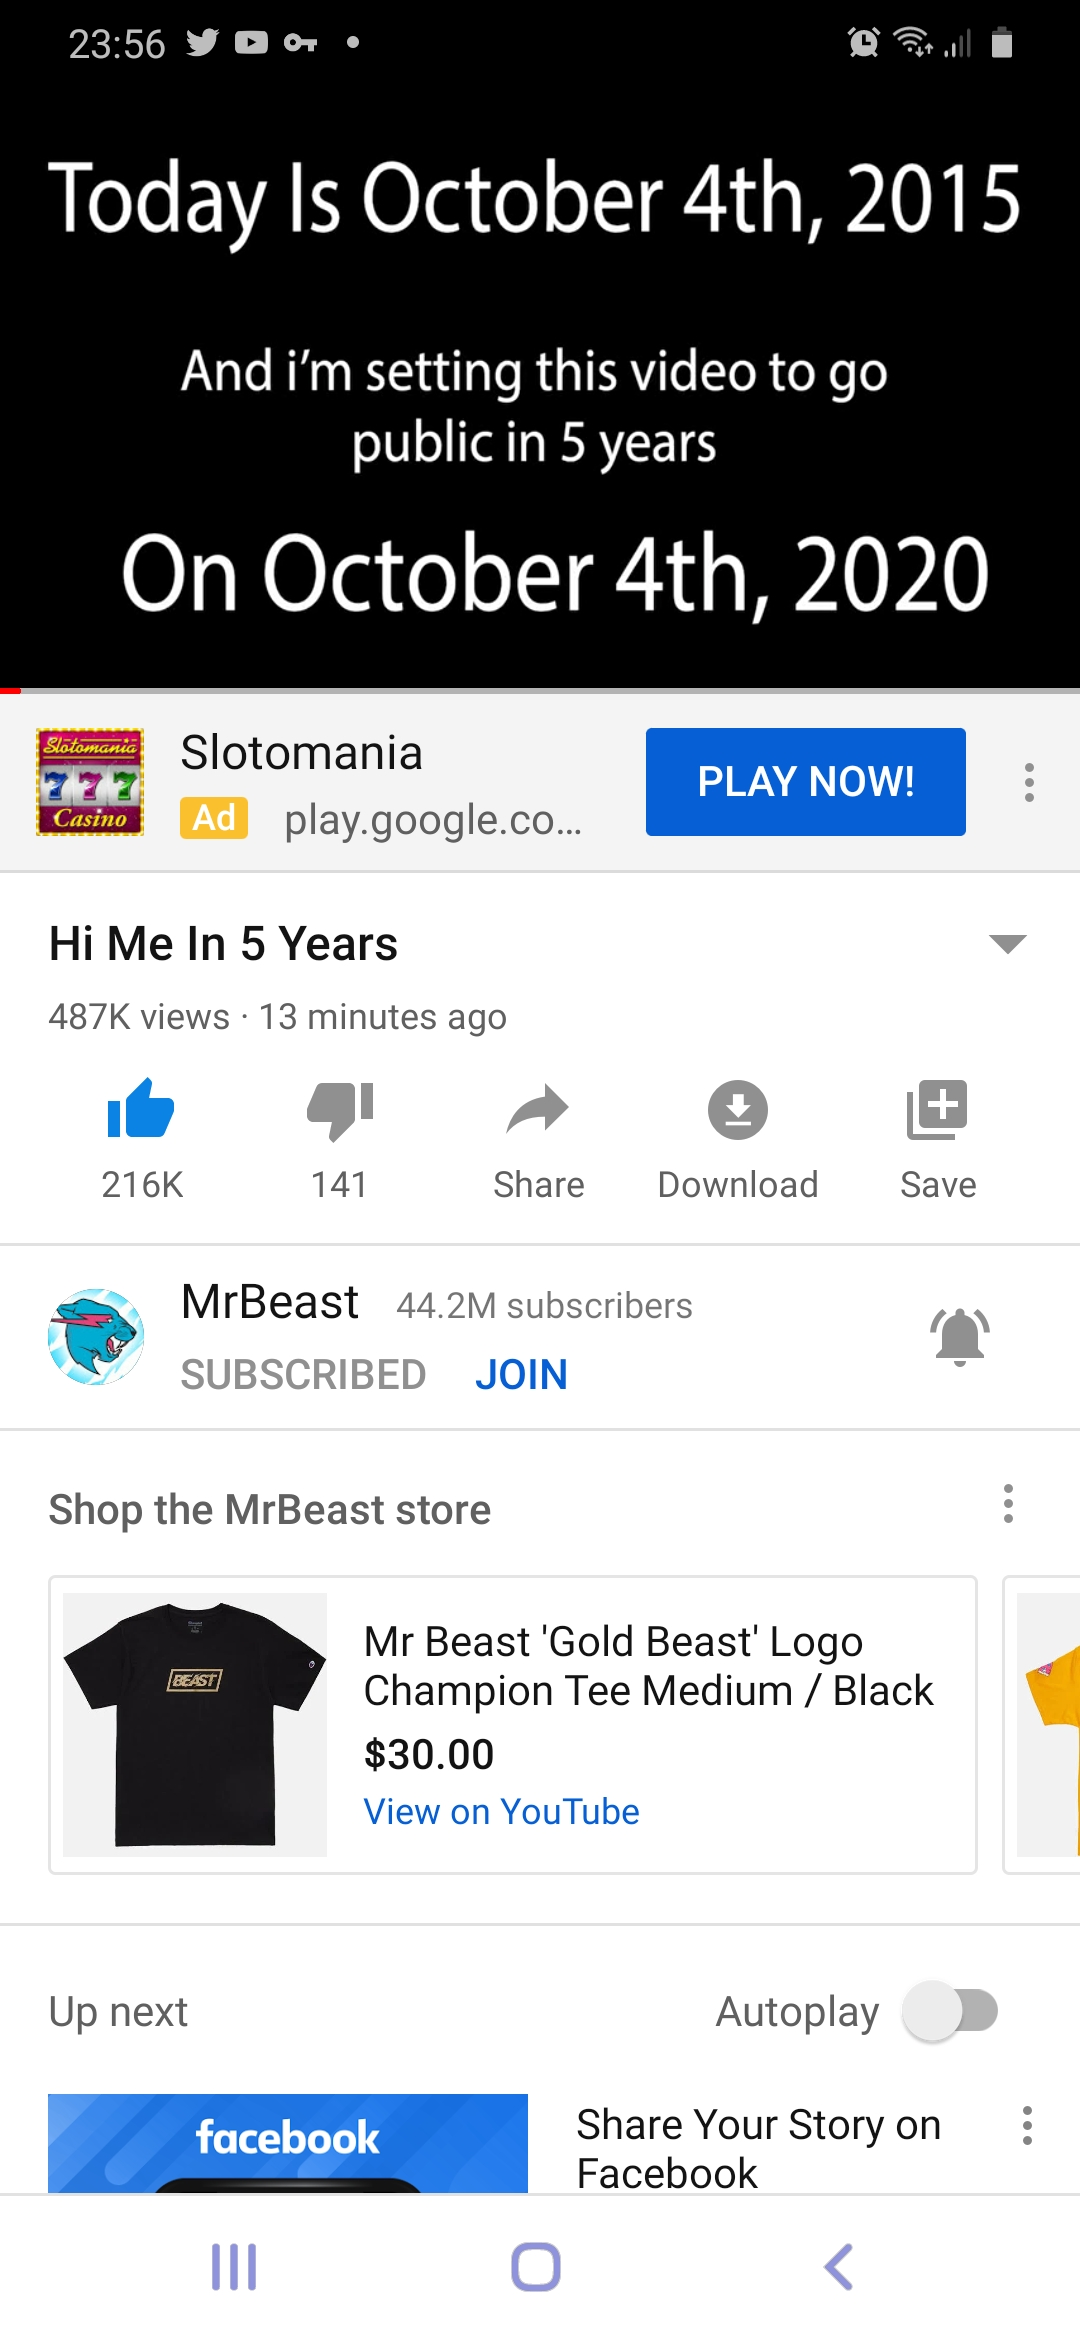 """23.56'DO1' ' fifimu I Today Is October 4th, 2015 And i'm setting this video to go public in 5 years On October 4th, 2020 Slotomania m play.google.co... """"£21? 7: Hi Me In 5 Years 487K views - 13 minutes ago 216K 141 Share Download Save Q? MrBeast 44.2w] subscribers K Shop the MrBeast store Mr Beast 'Gold Beast' Logo Champion Tee Medium / Black $30.00 Up next Autoplay Share Your Story on — Facebook https://inspirational.ly"""